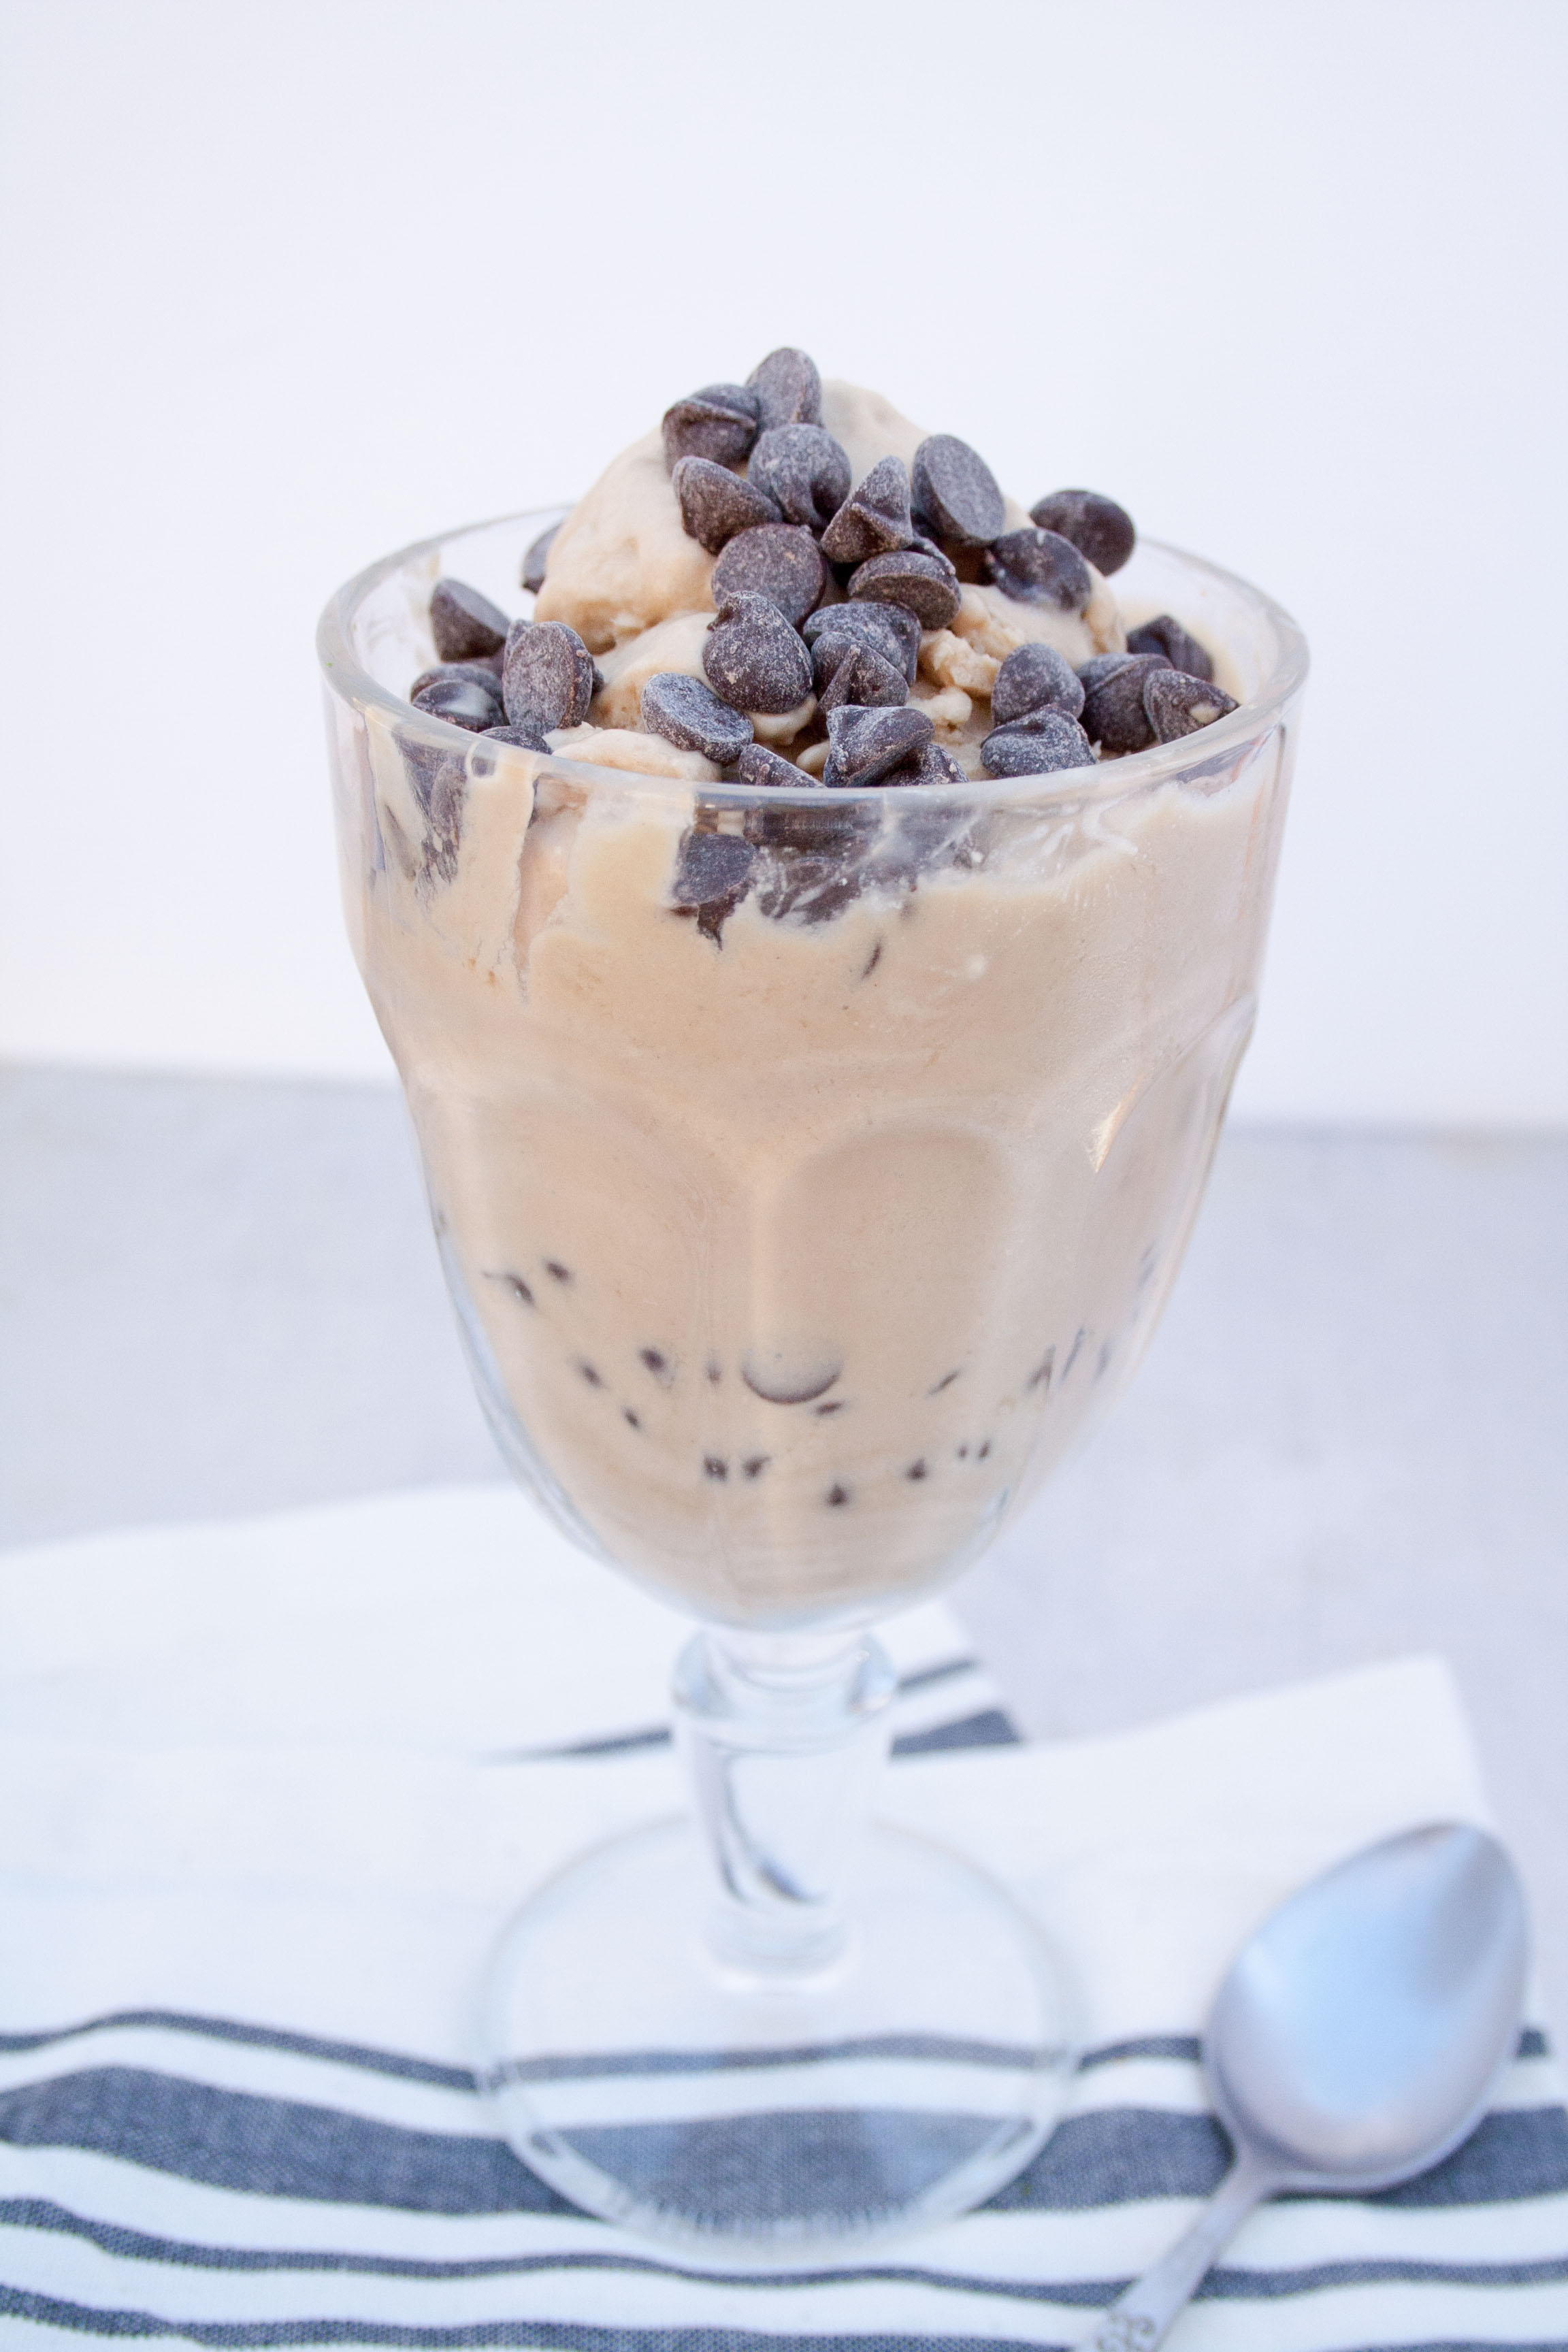 Vegan White Russian Ice Cream with chocolate chips on top.